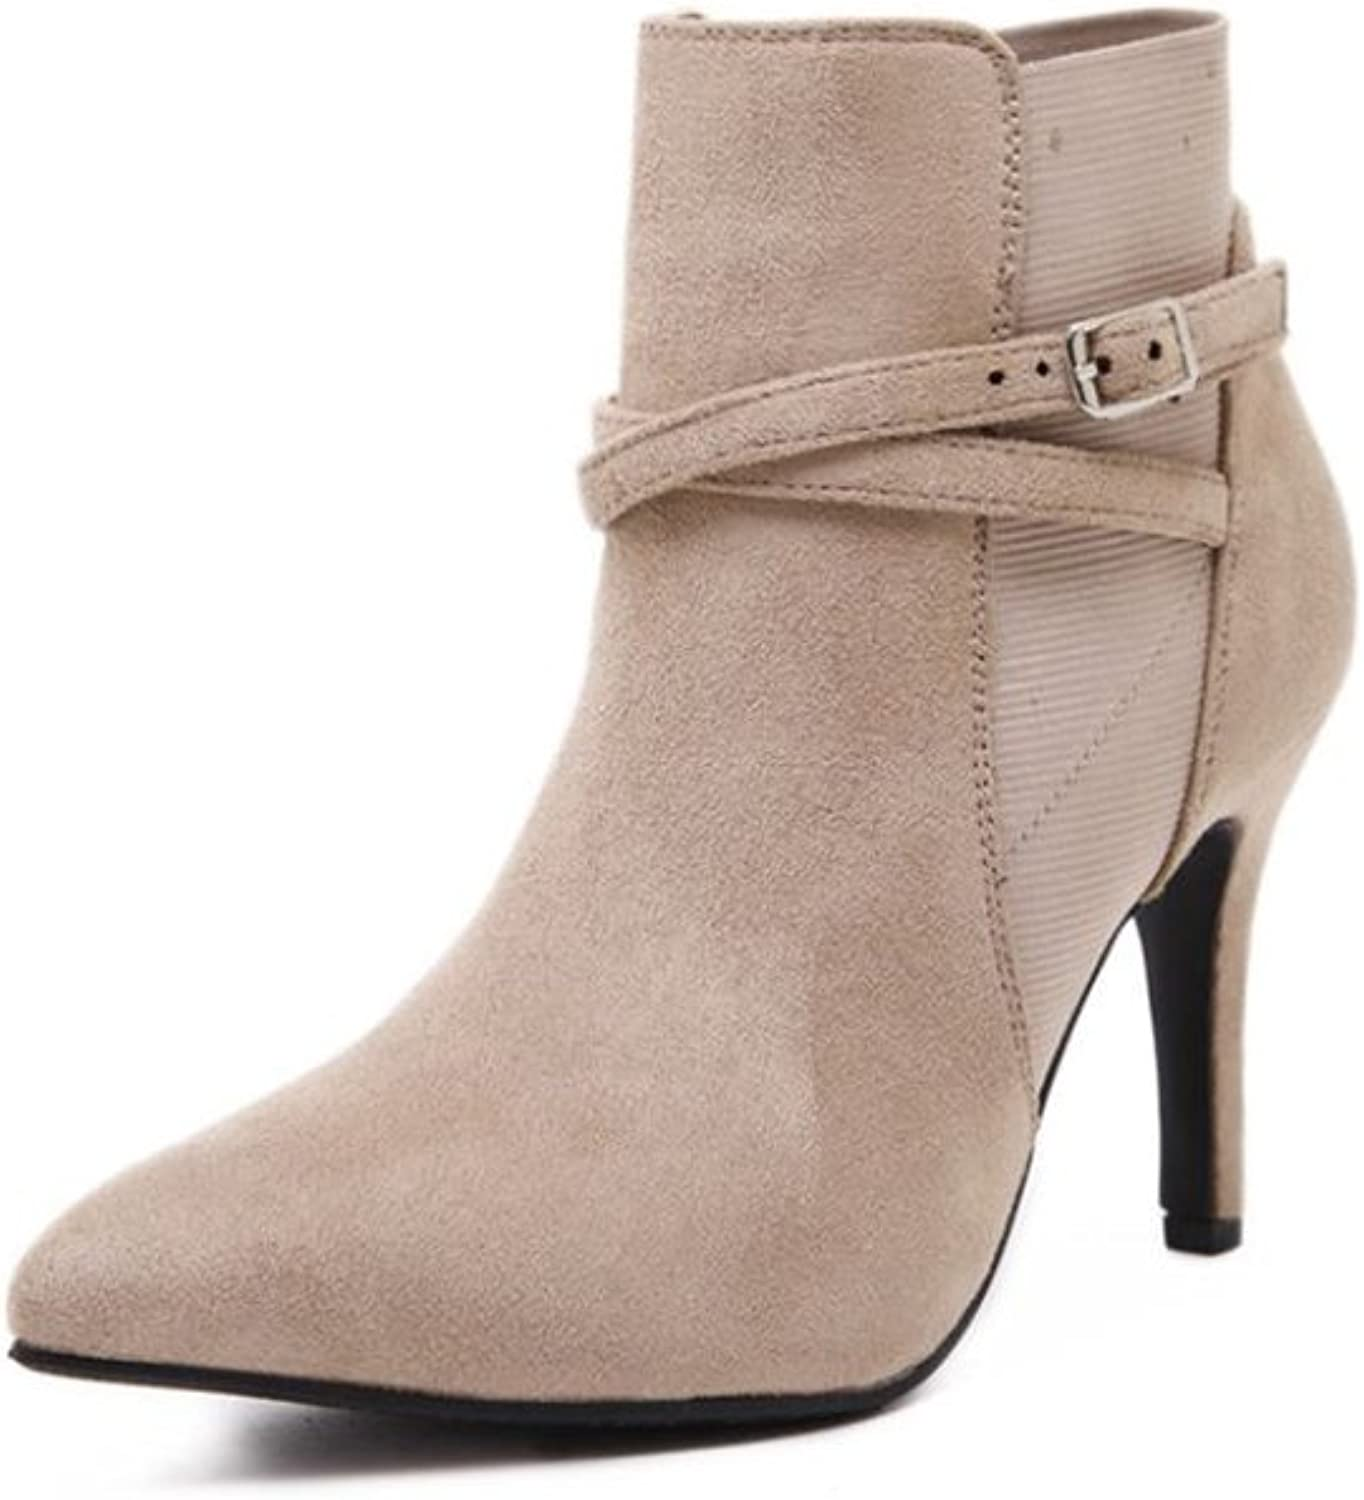 pink town Women's Elegant Faux Suede Pointed Toe Bridal Booties high Heel Ankle Boots shoes